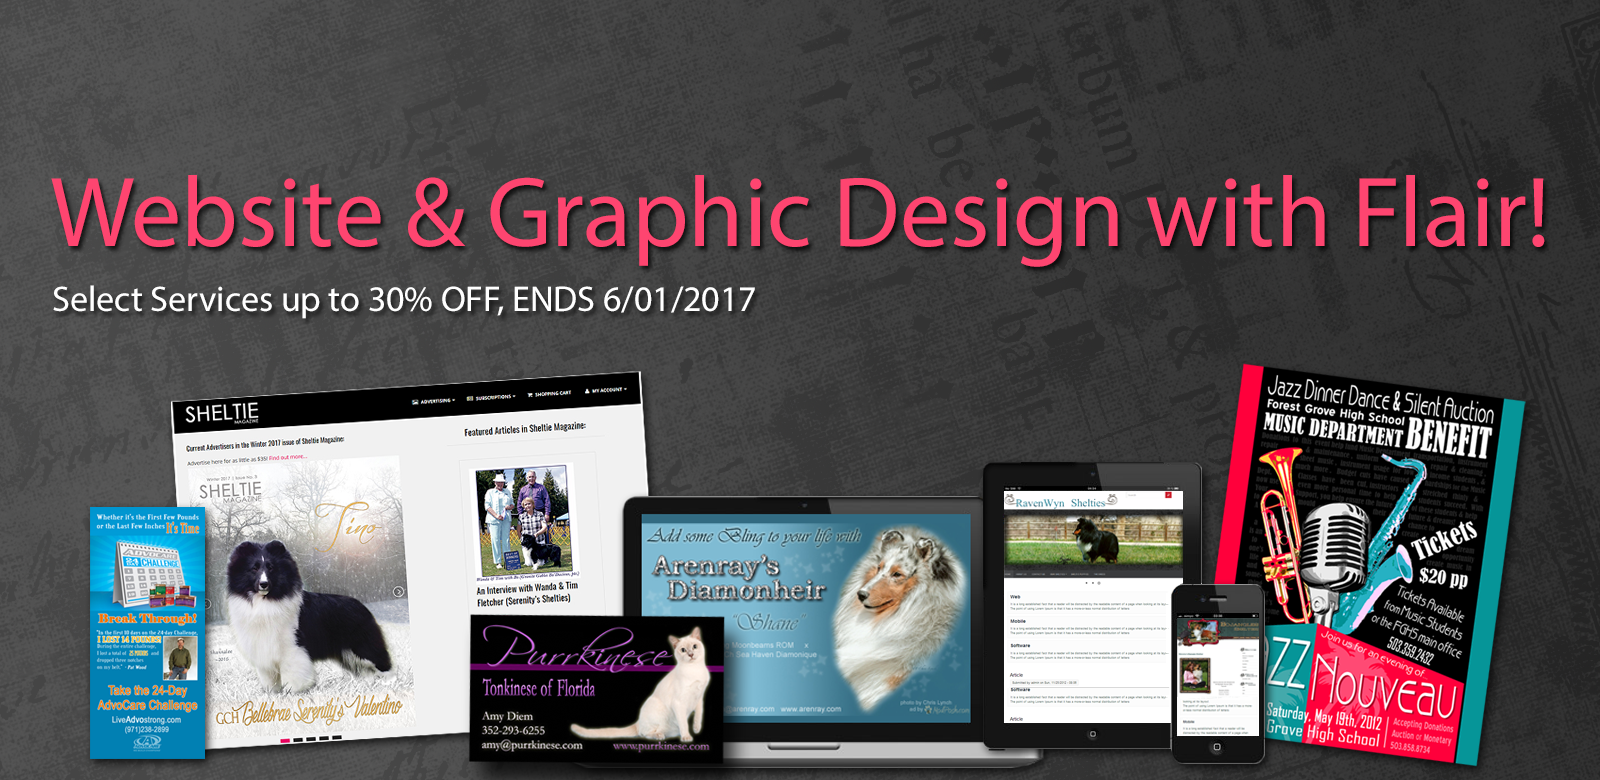 magazine publishers, graphic designers for show dog breeders, websites for dog and cat breeders